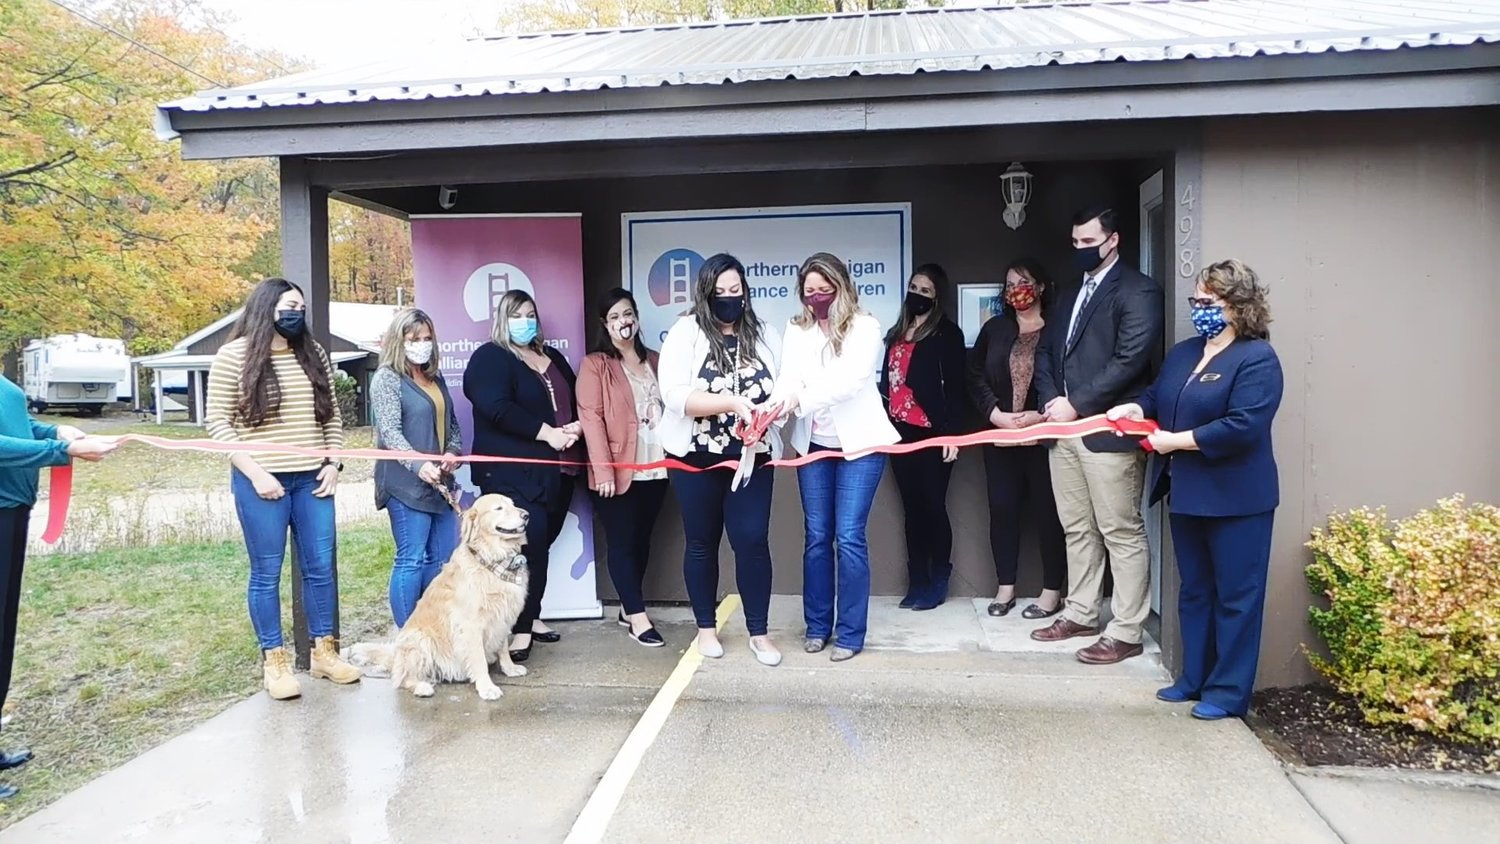 At center, Eriana DeKalita-Mull, left, and Mandy Wigren officially cut the ribbon marking the official opening of the Northern Michigan Alliance for Children's Center for Hope and Healing. They were joined by NMAC staff and representatives from the Harrison Chamber of Commerce.